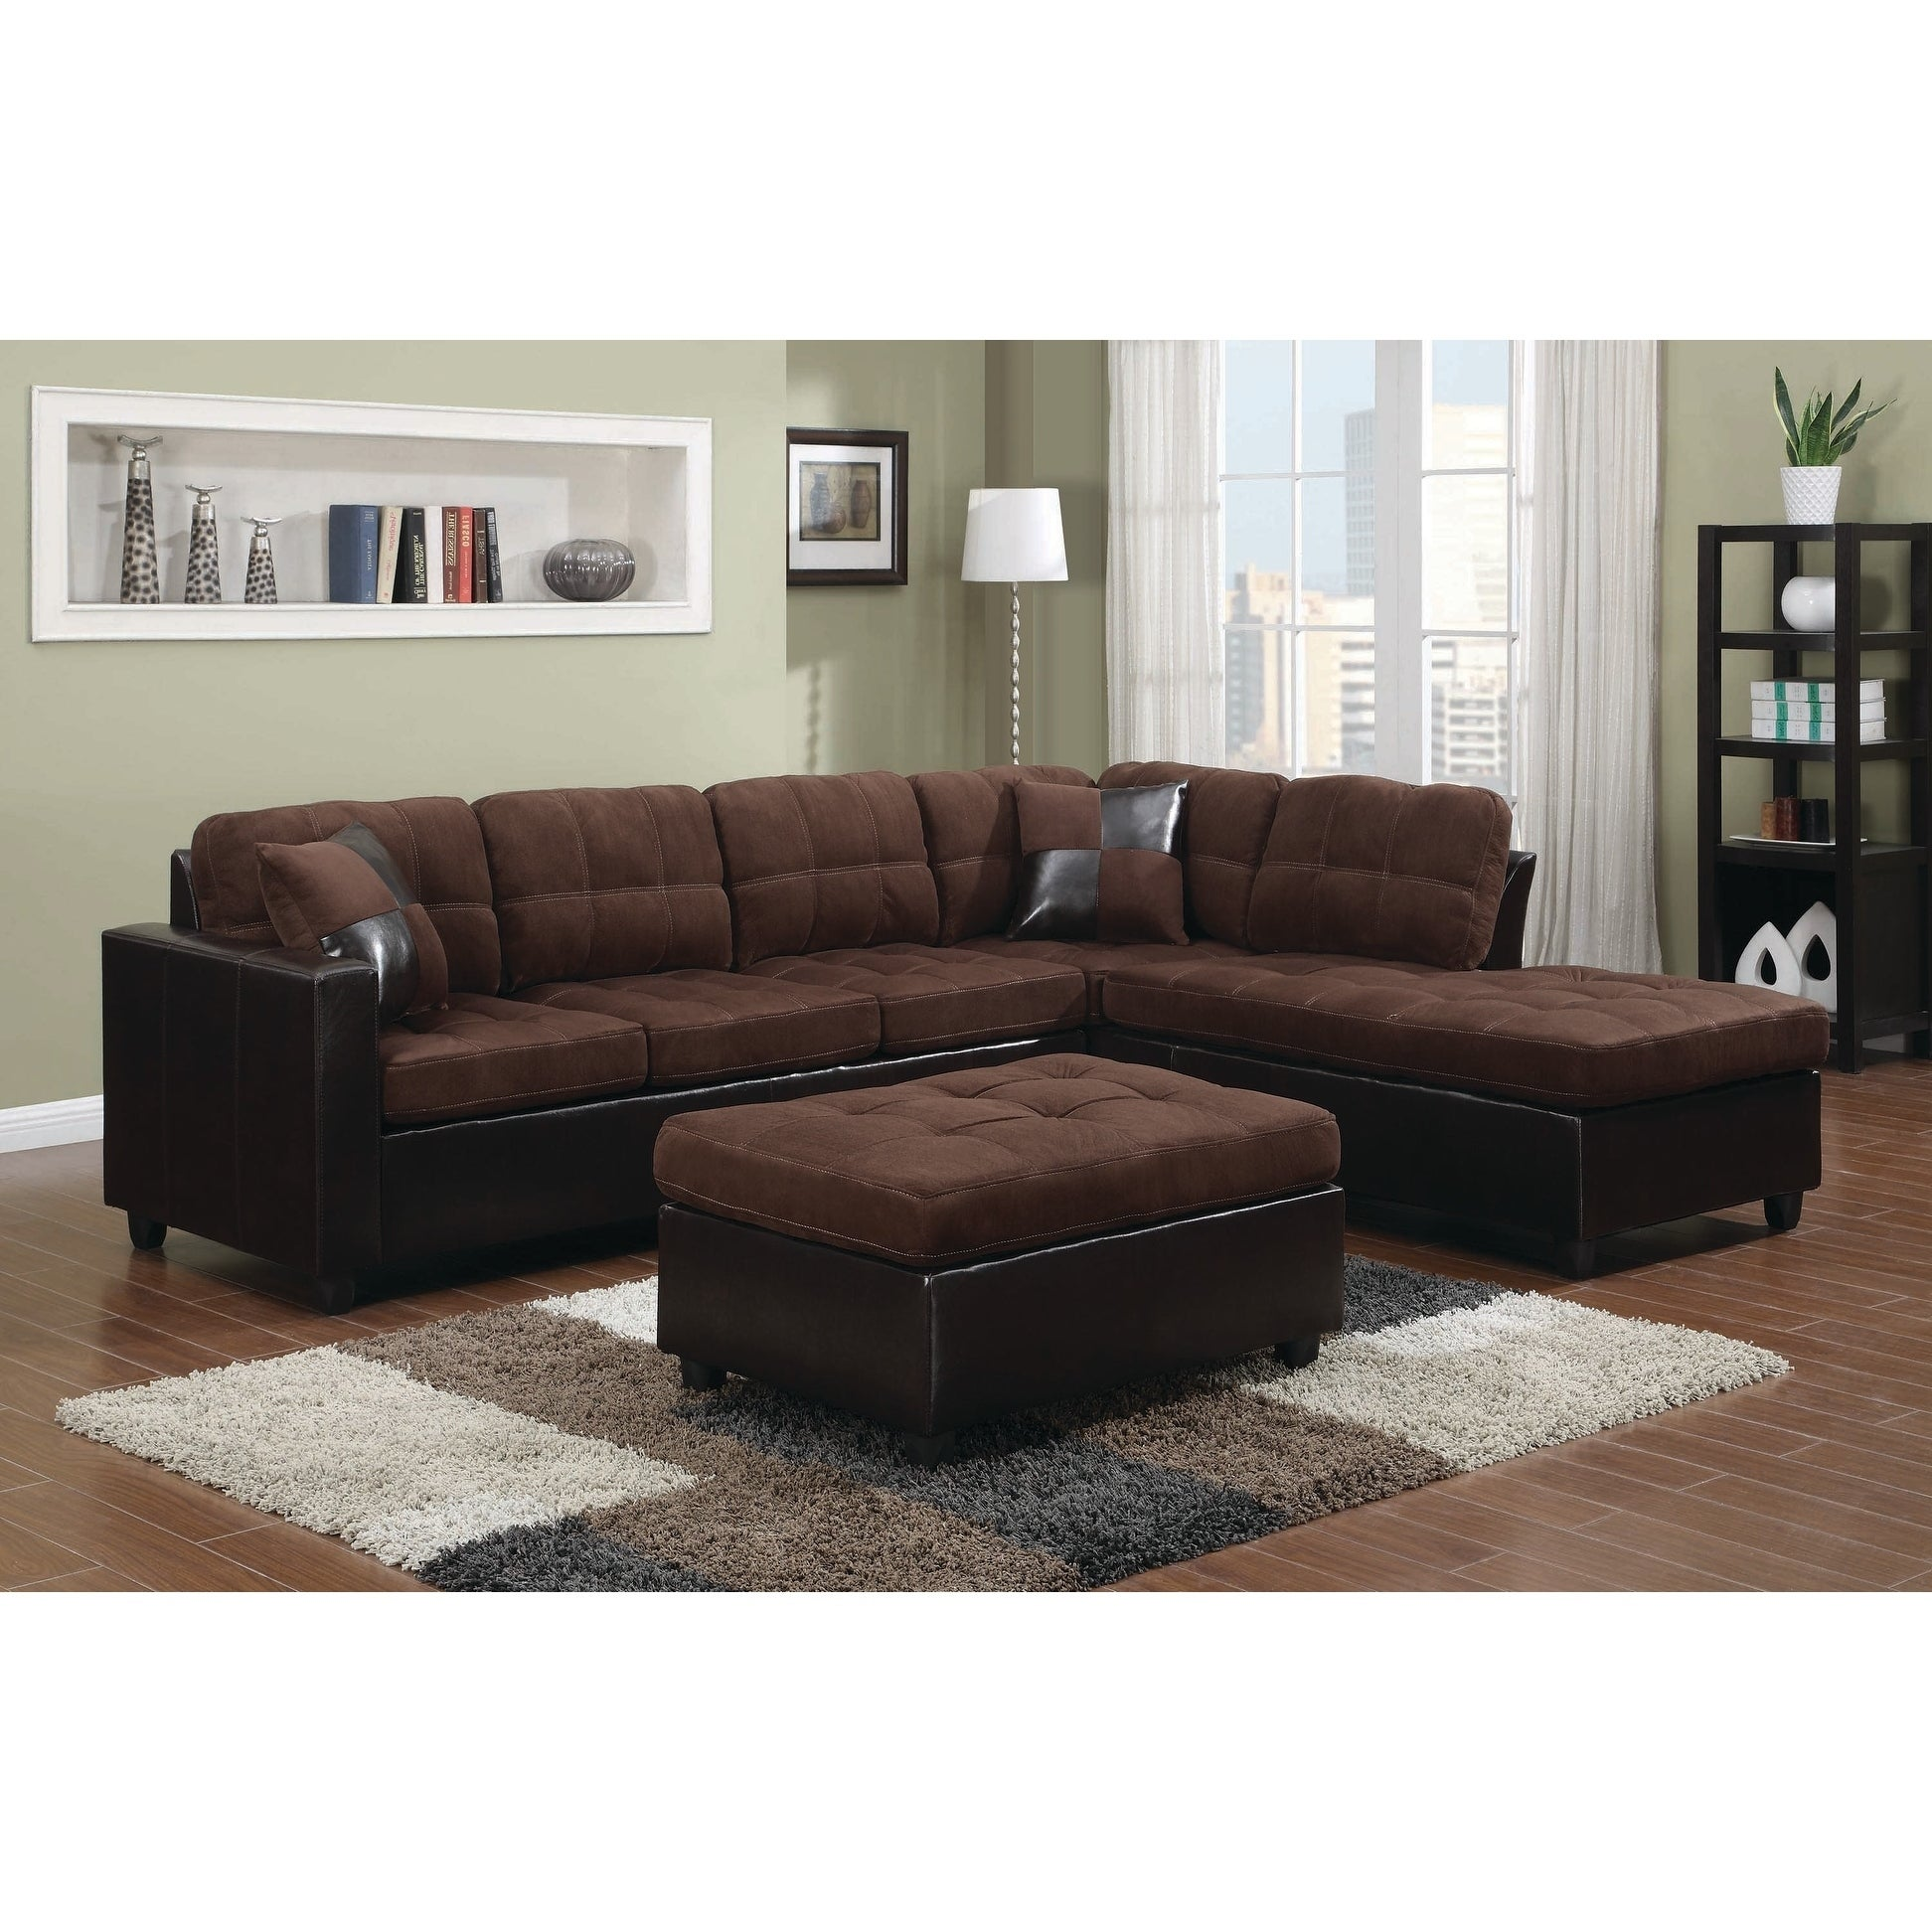 Coaster Furniture Chocolate Velvet Vinyl Tufted Sectional...